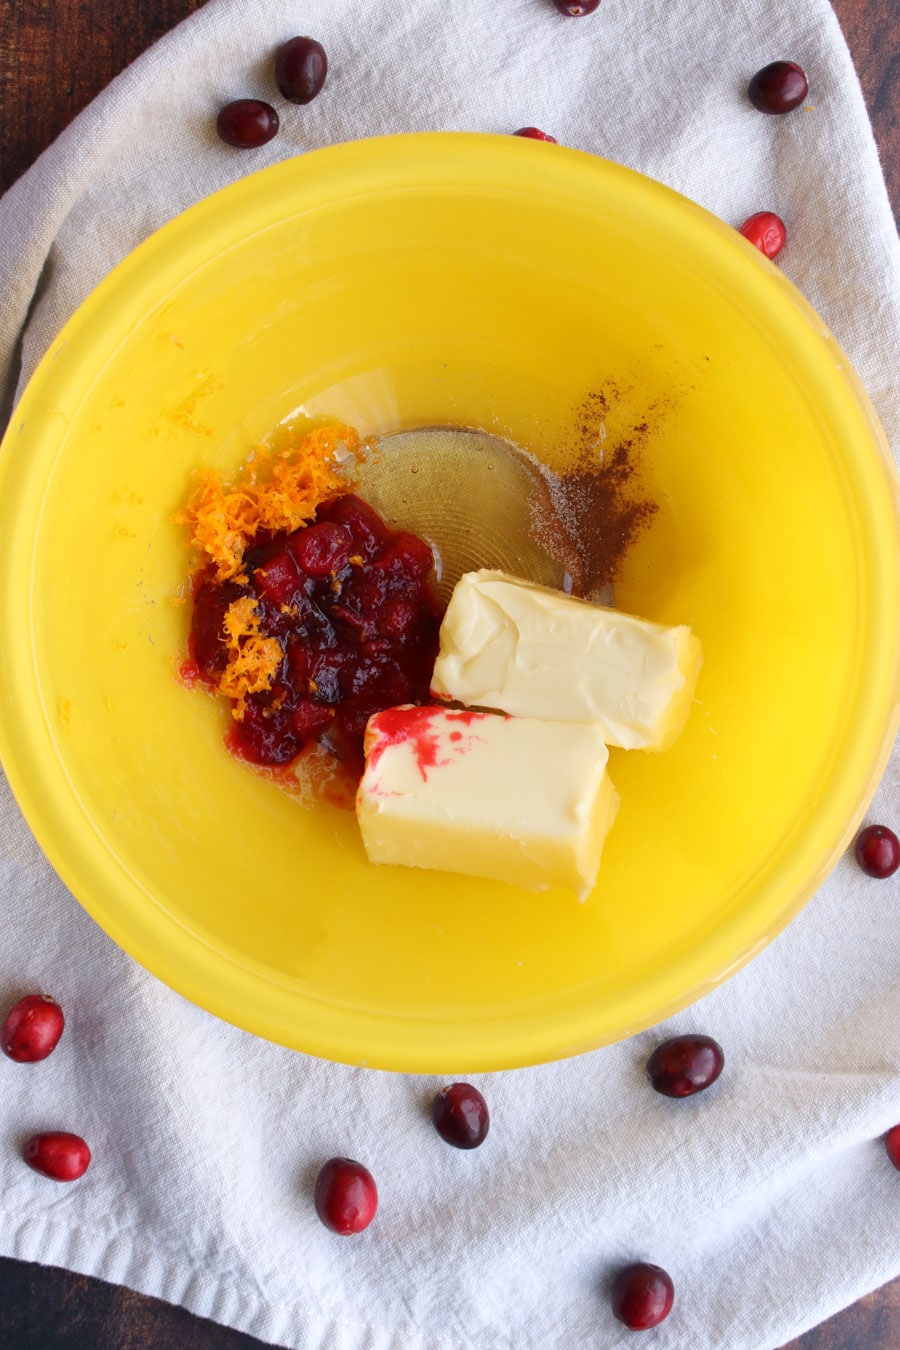 Cranberry butter ingredients in a yellow bowl